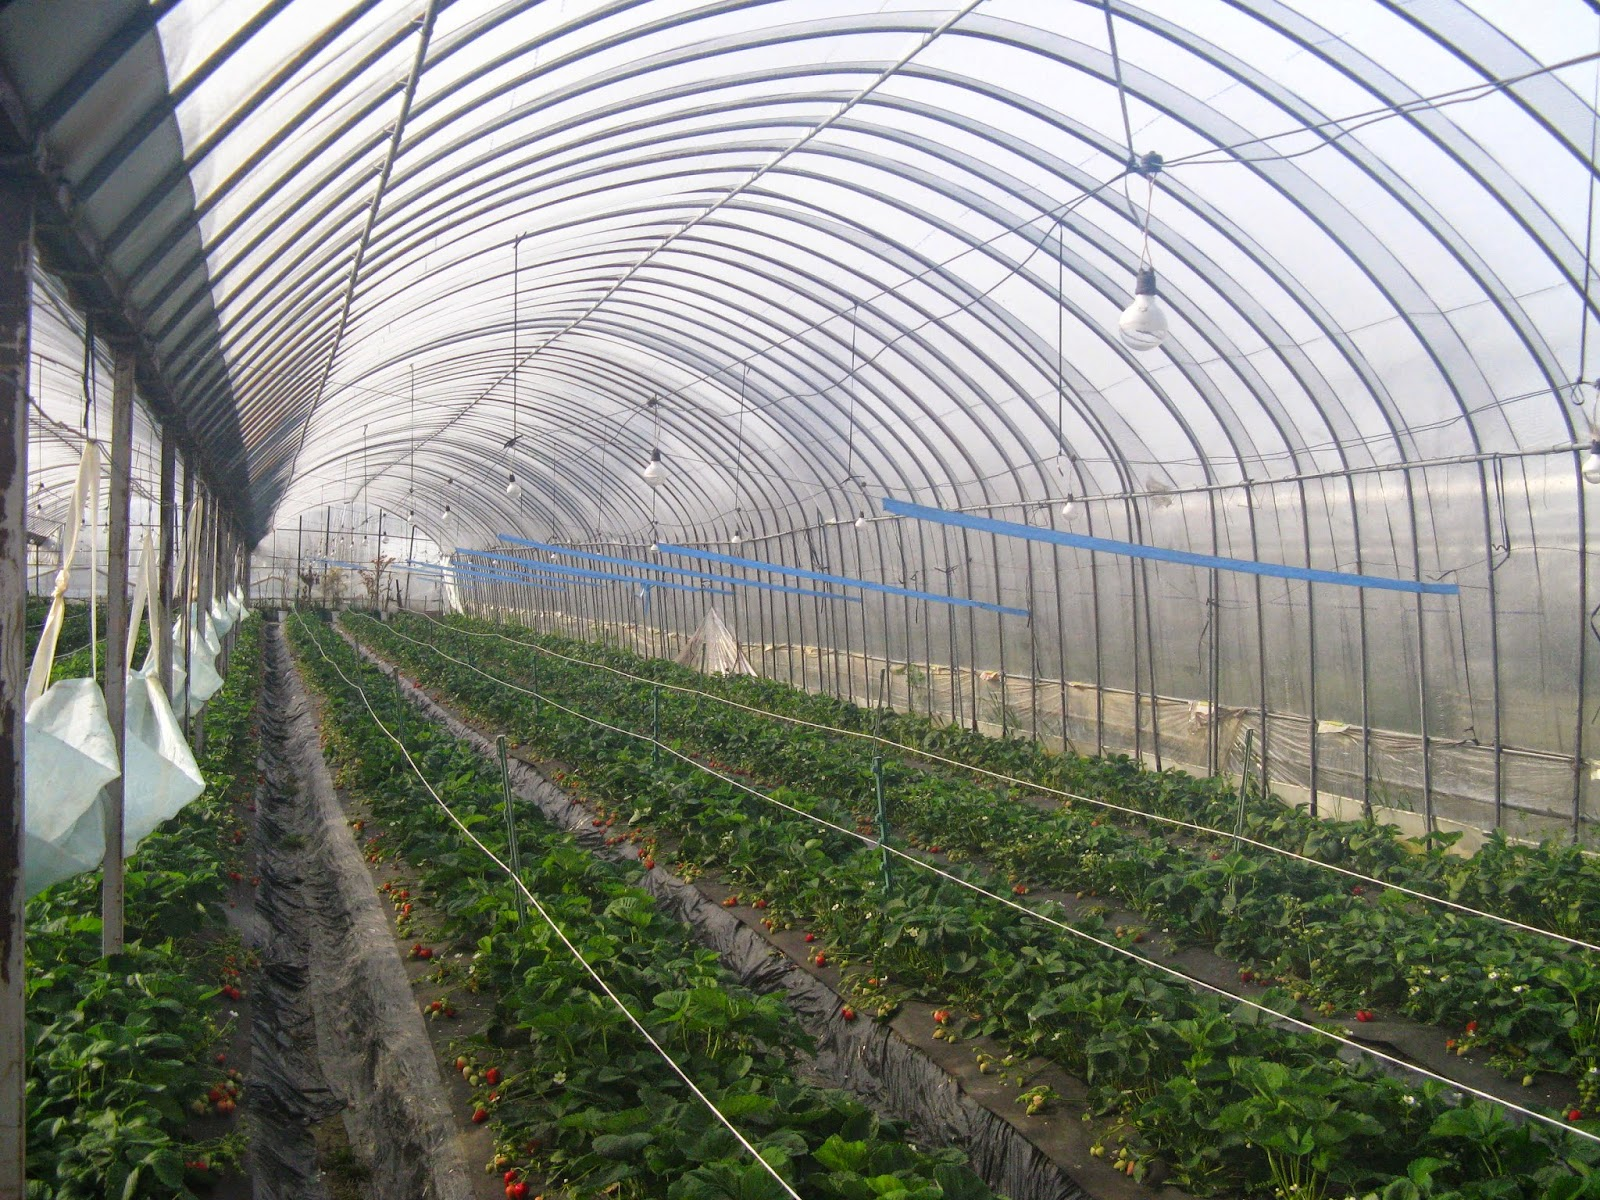 Japanese Strawberry Farm